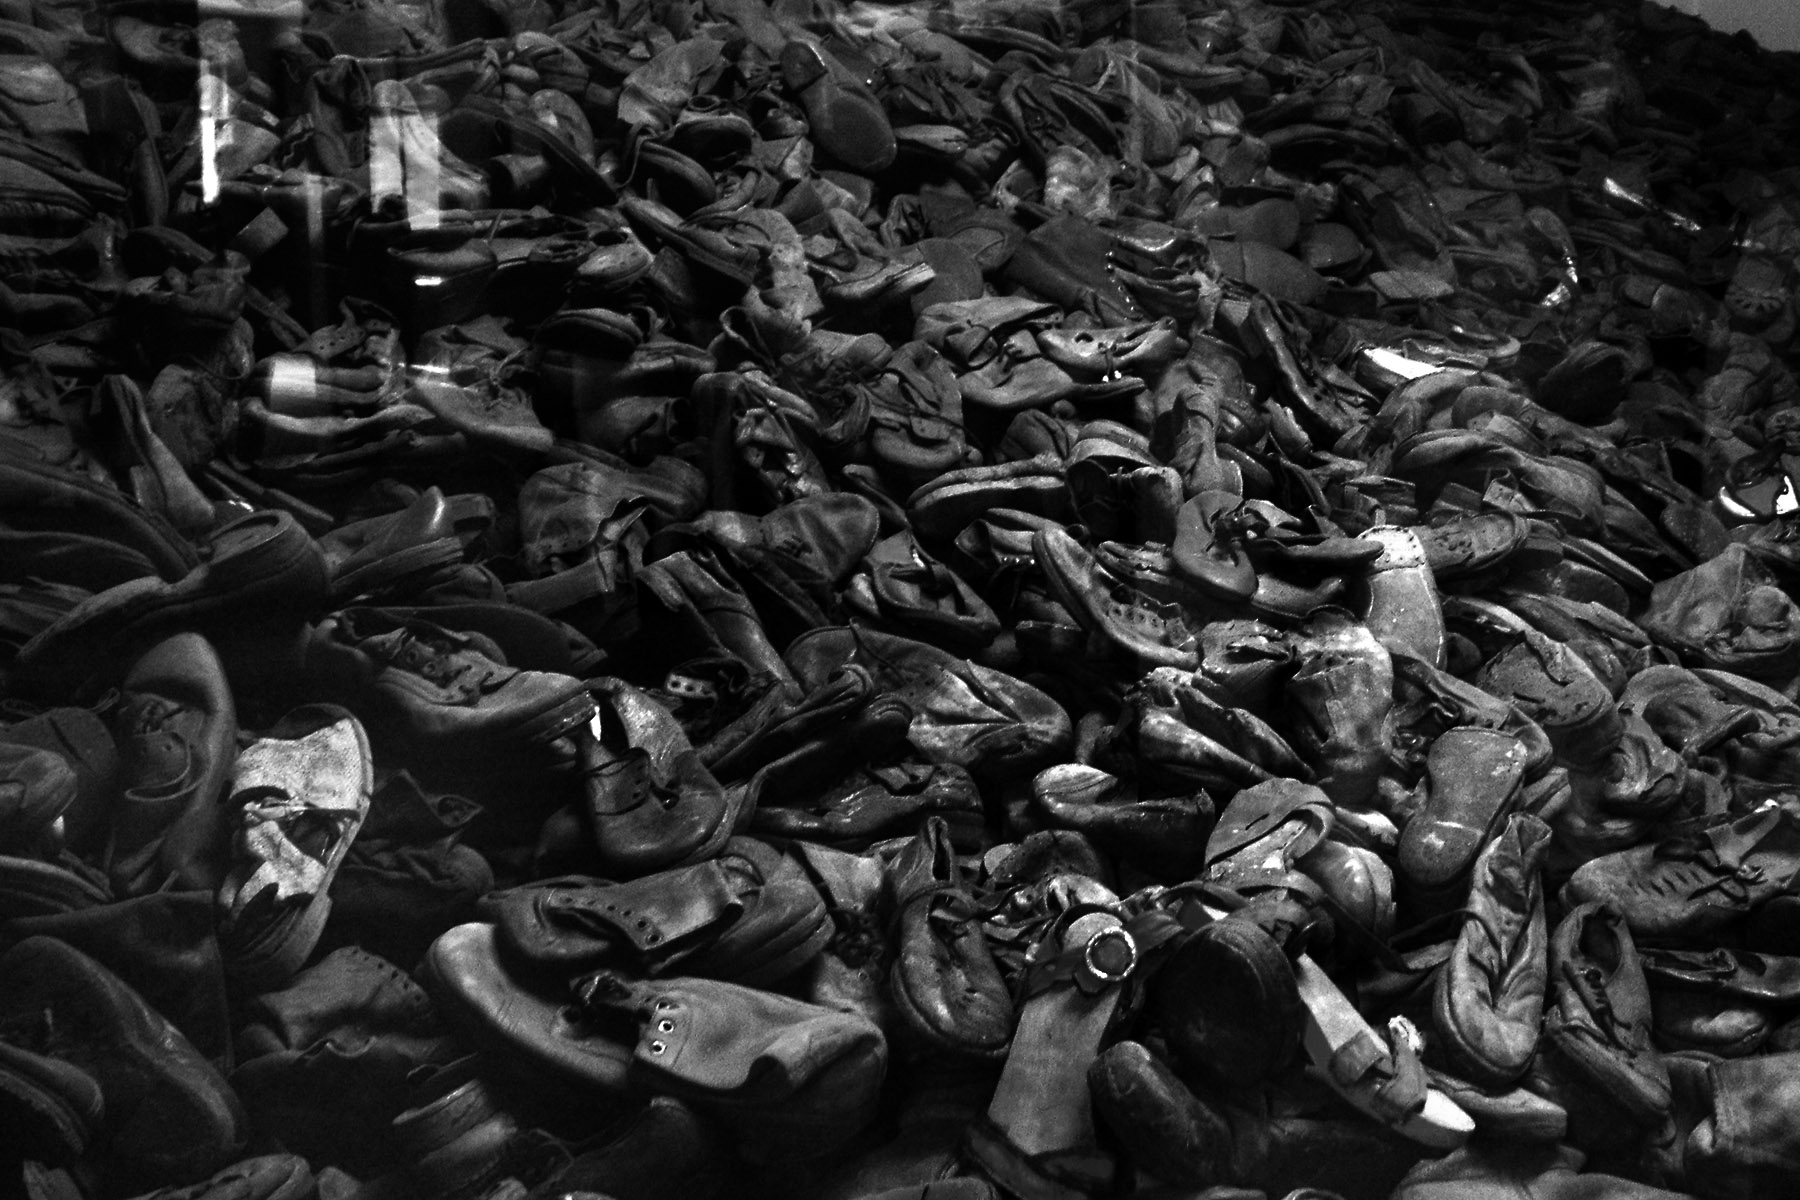 Auschwitz 1 – collection of footwear